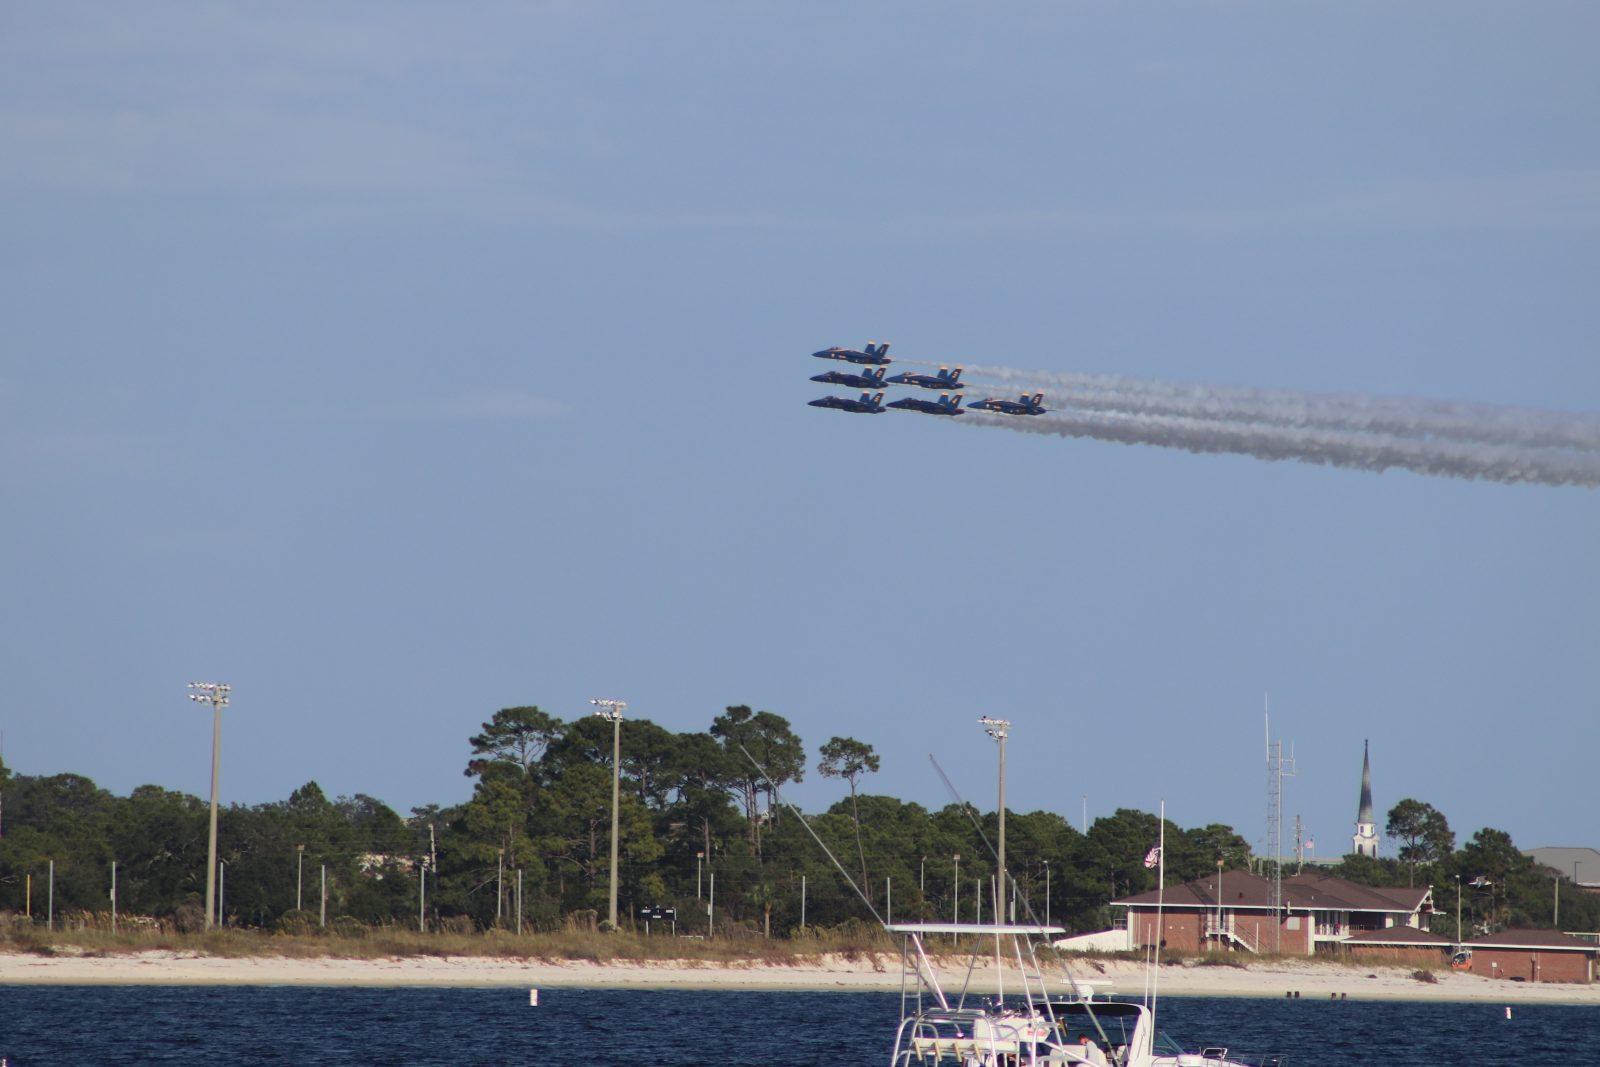 pensacola based blue angels